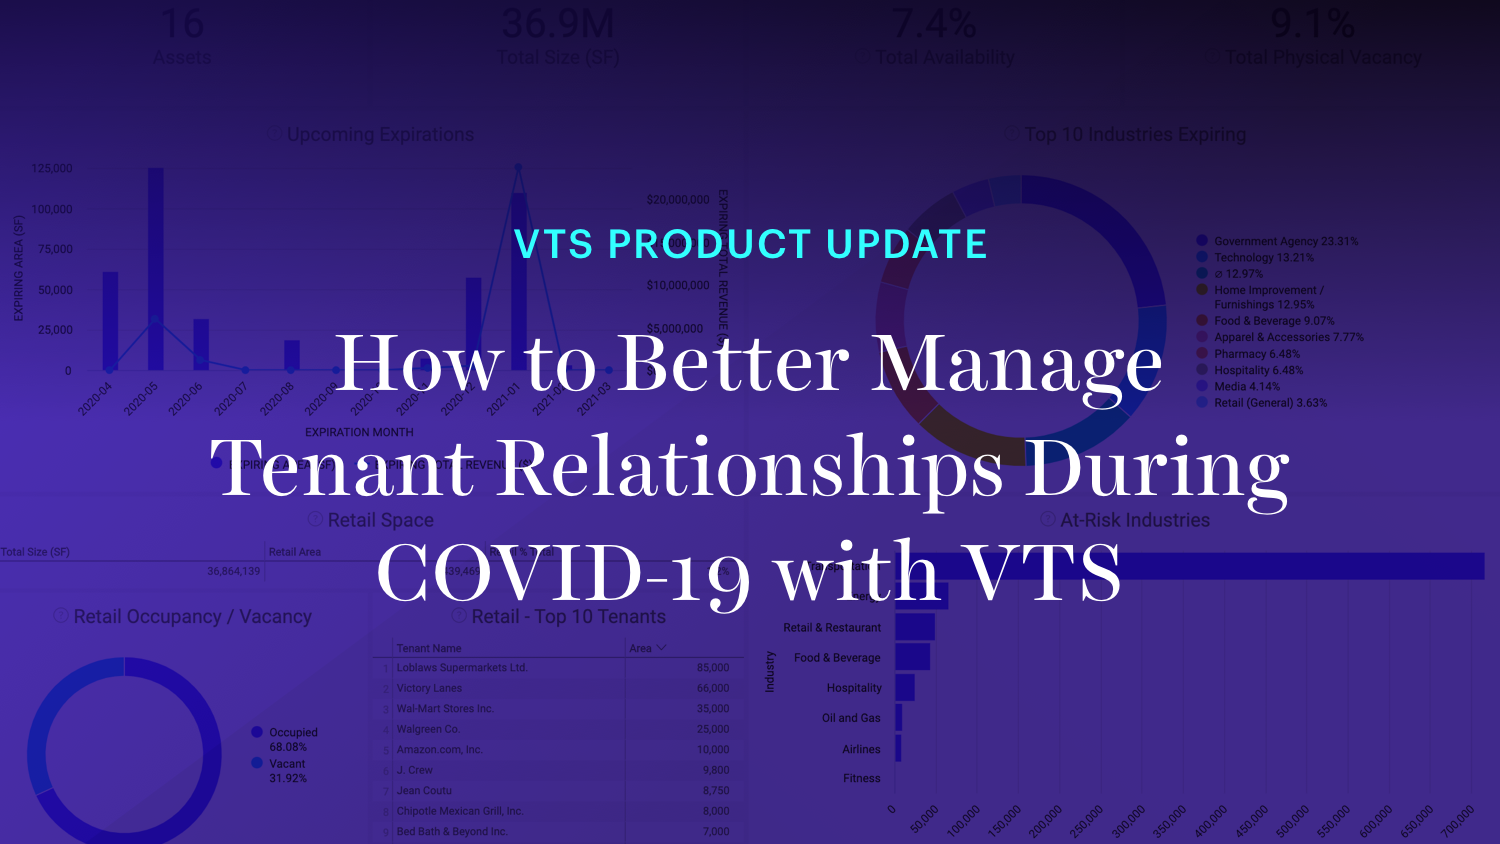 How to Better Manage Tenant Relationships During COVID-19 with VTS